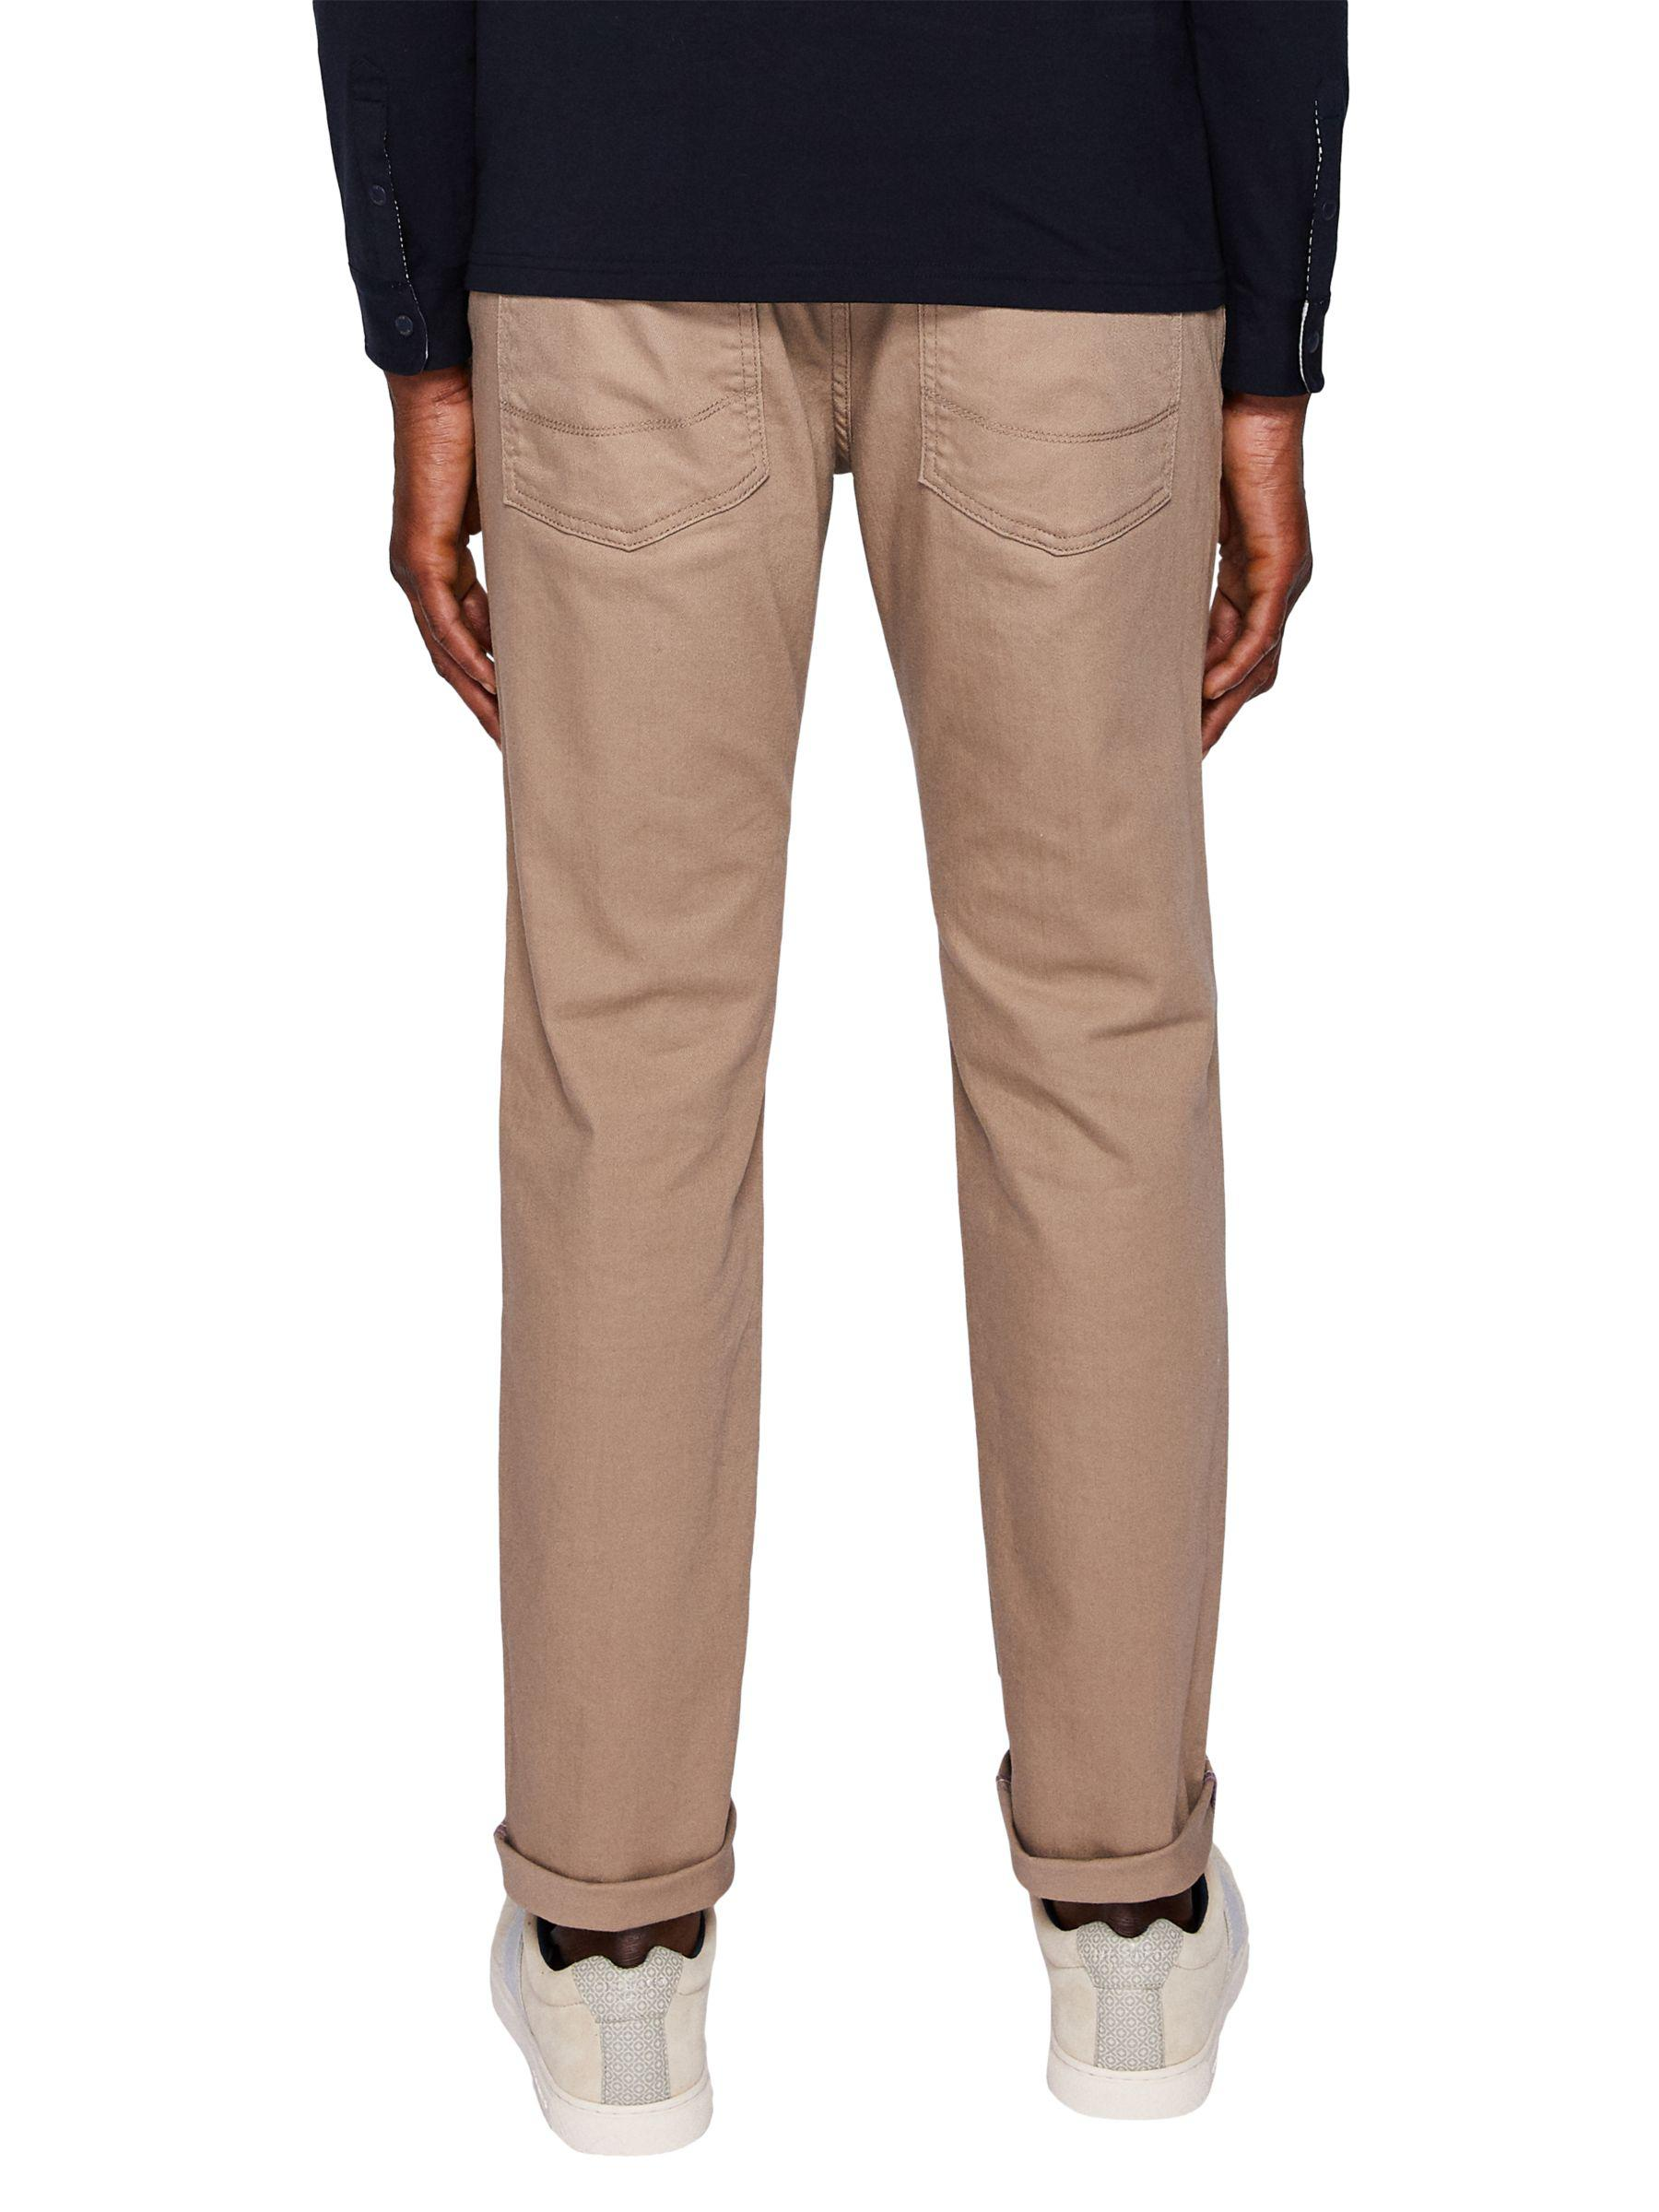 764e199cd4807 Ted Baker Colz Straight Fit Coloured Jeans for Men - Lyst